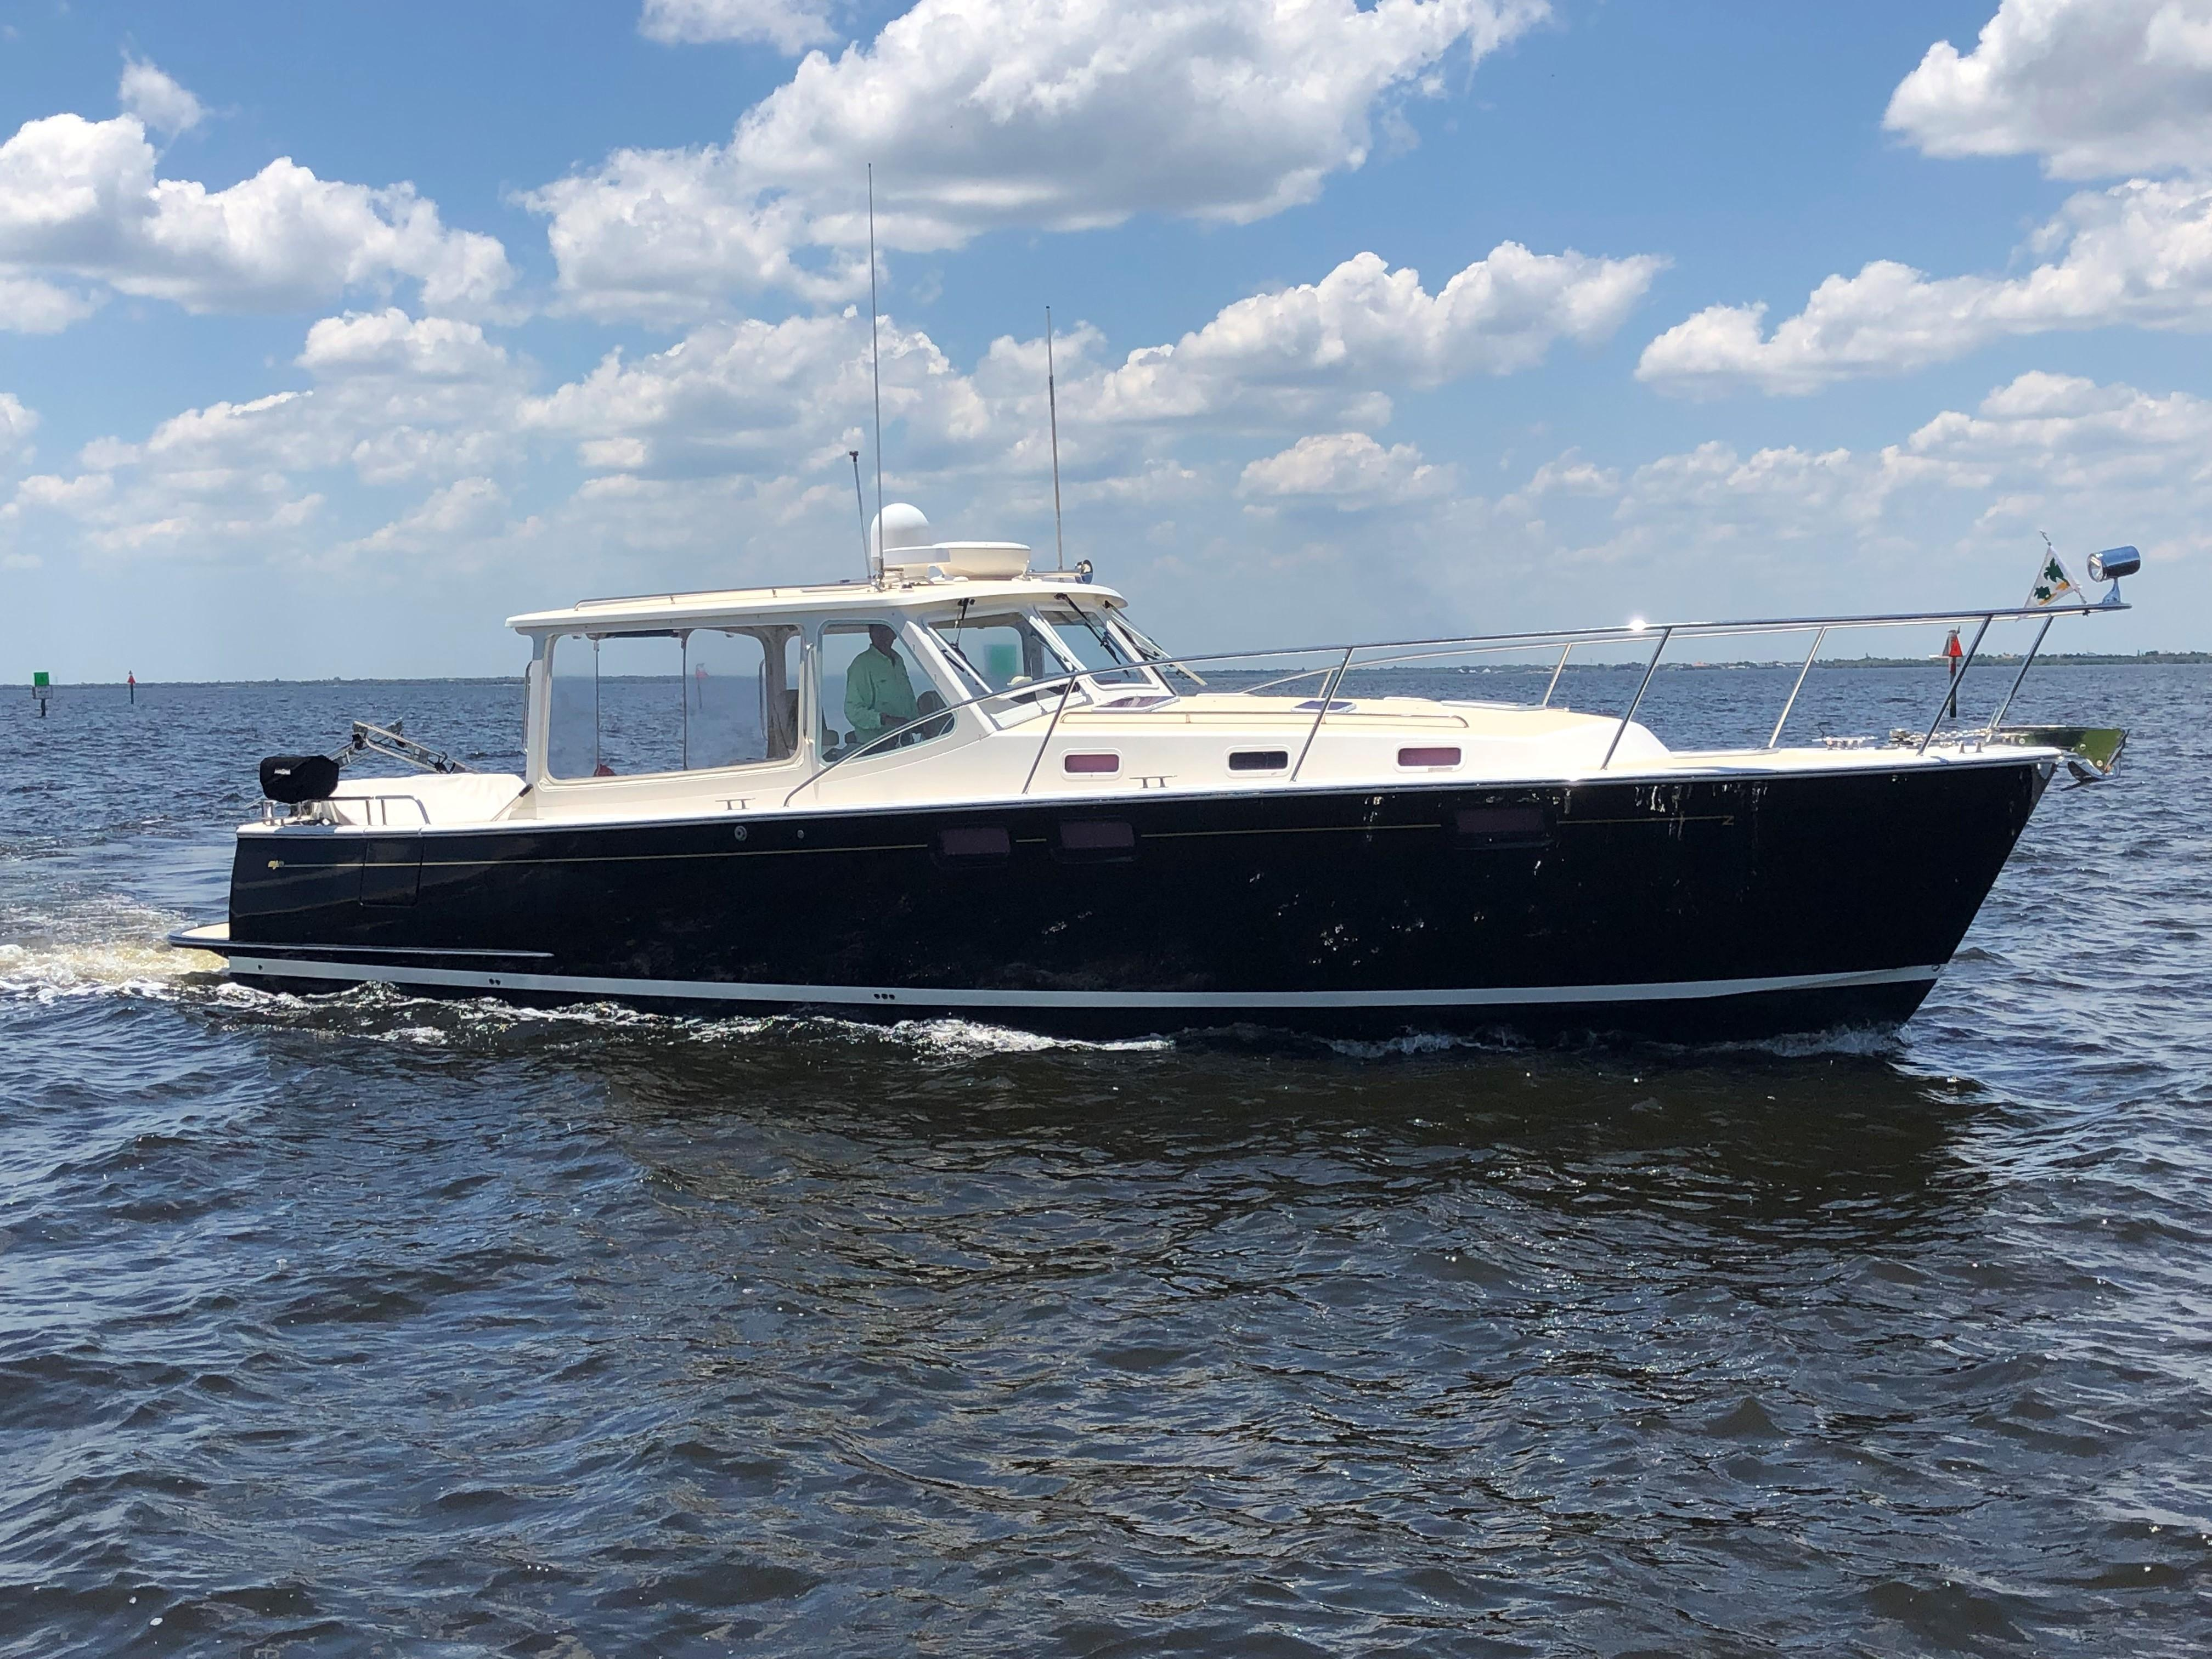 Used MJM Yachts for Sale - MJM Boat Search MLS